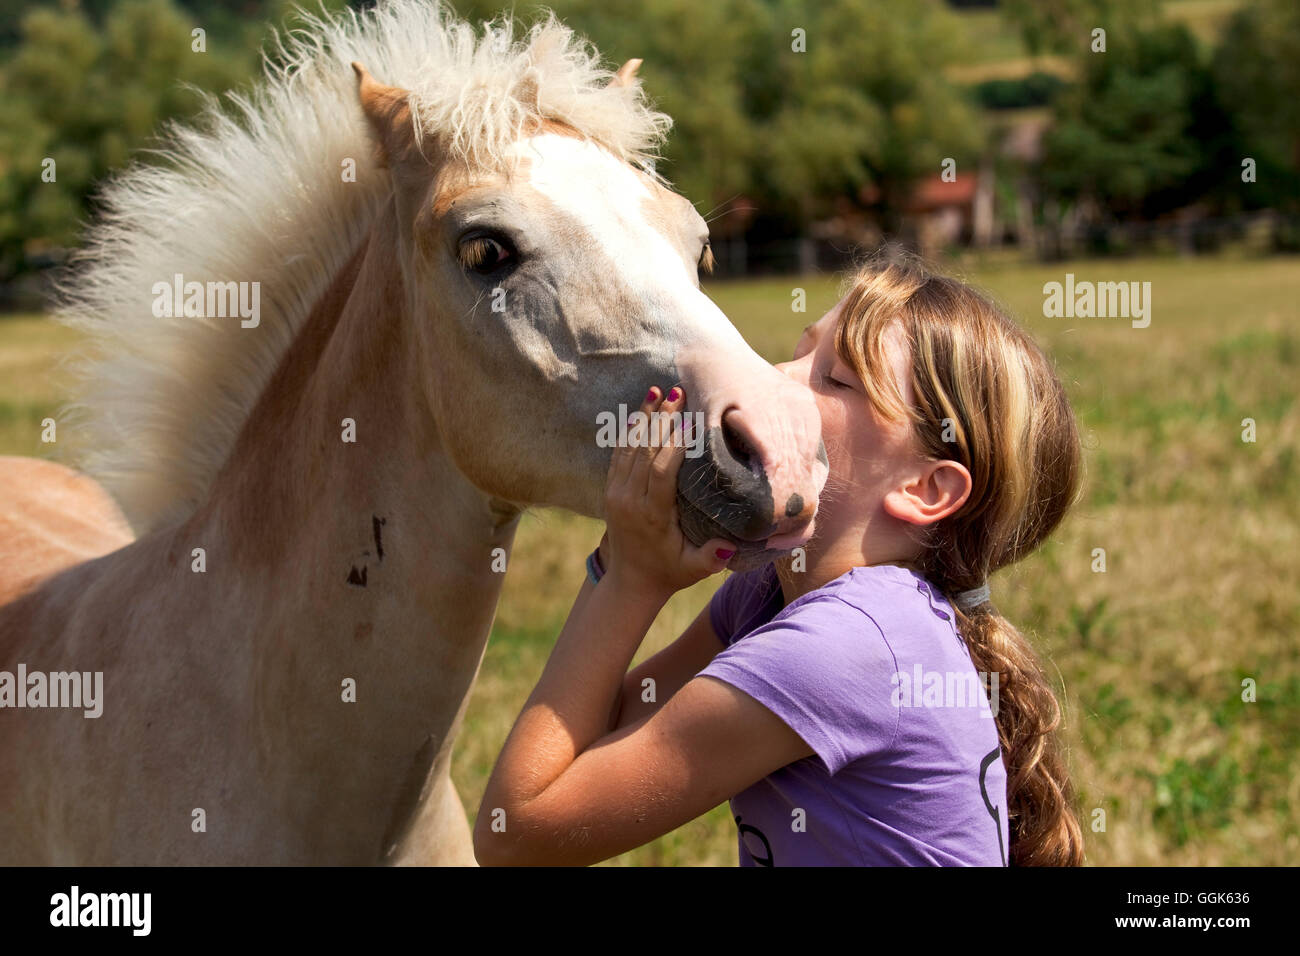 Young girl giving a young foul a kiss, Wellen, Hesse, Germany, Europe - Stock Image